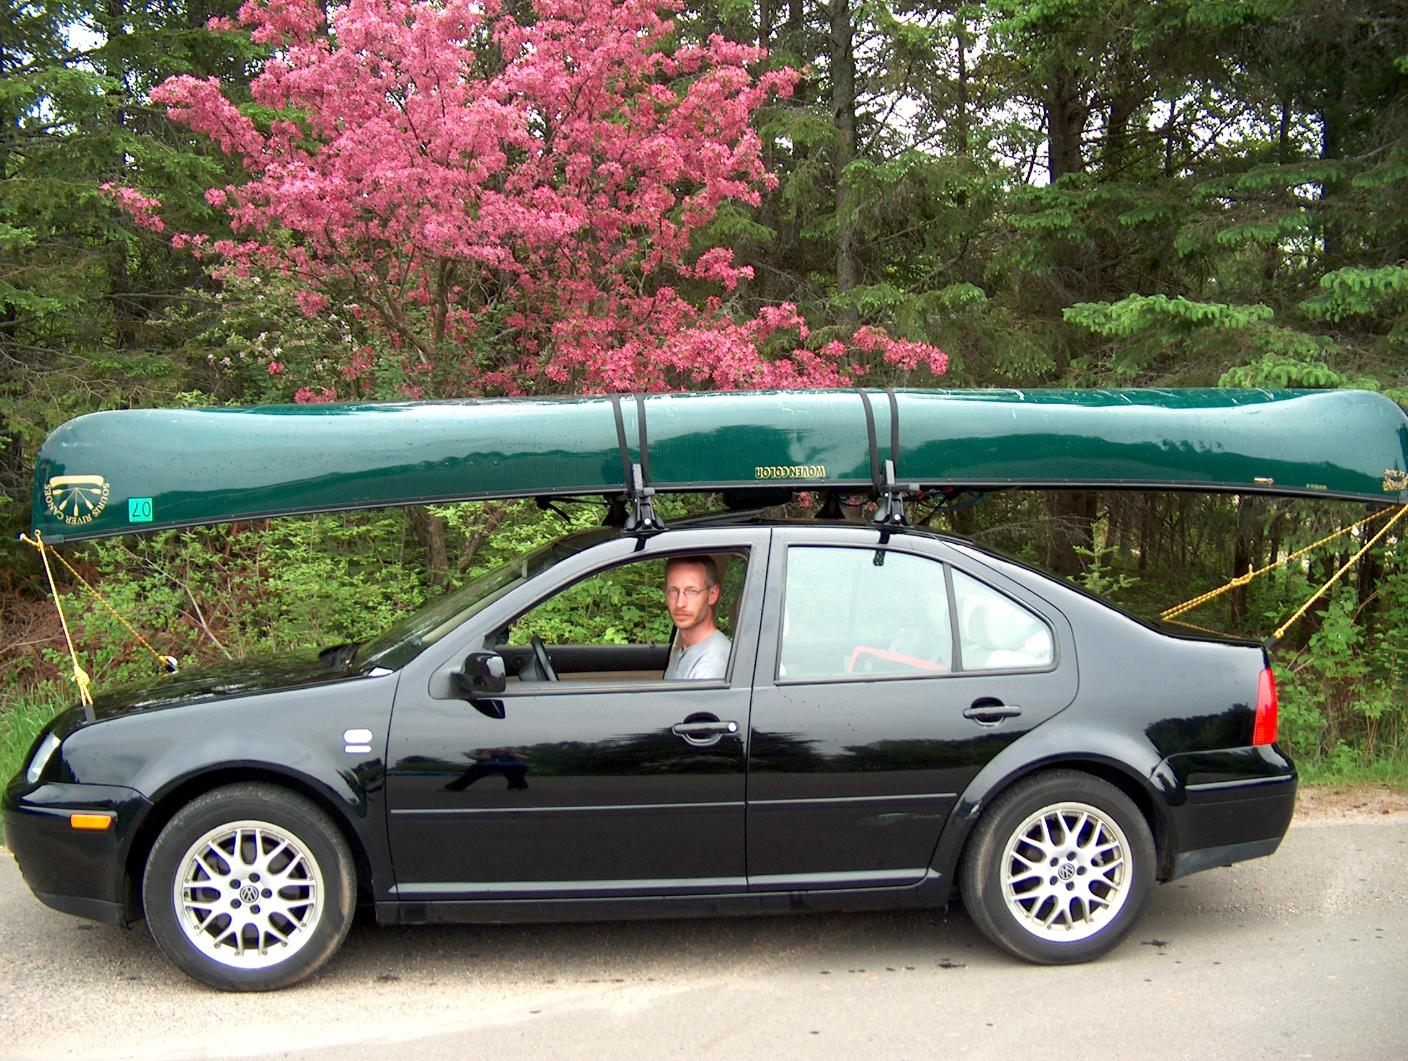 Bwca Carrying A Canoe On A Compact Car Boundary Waters